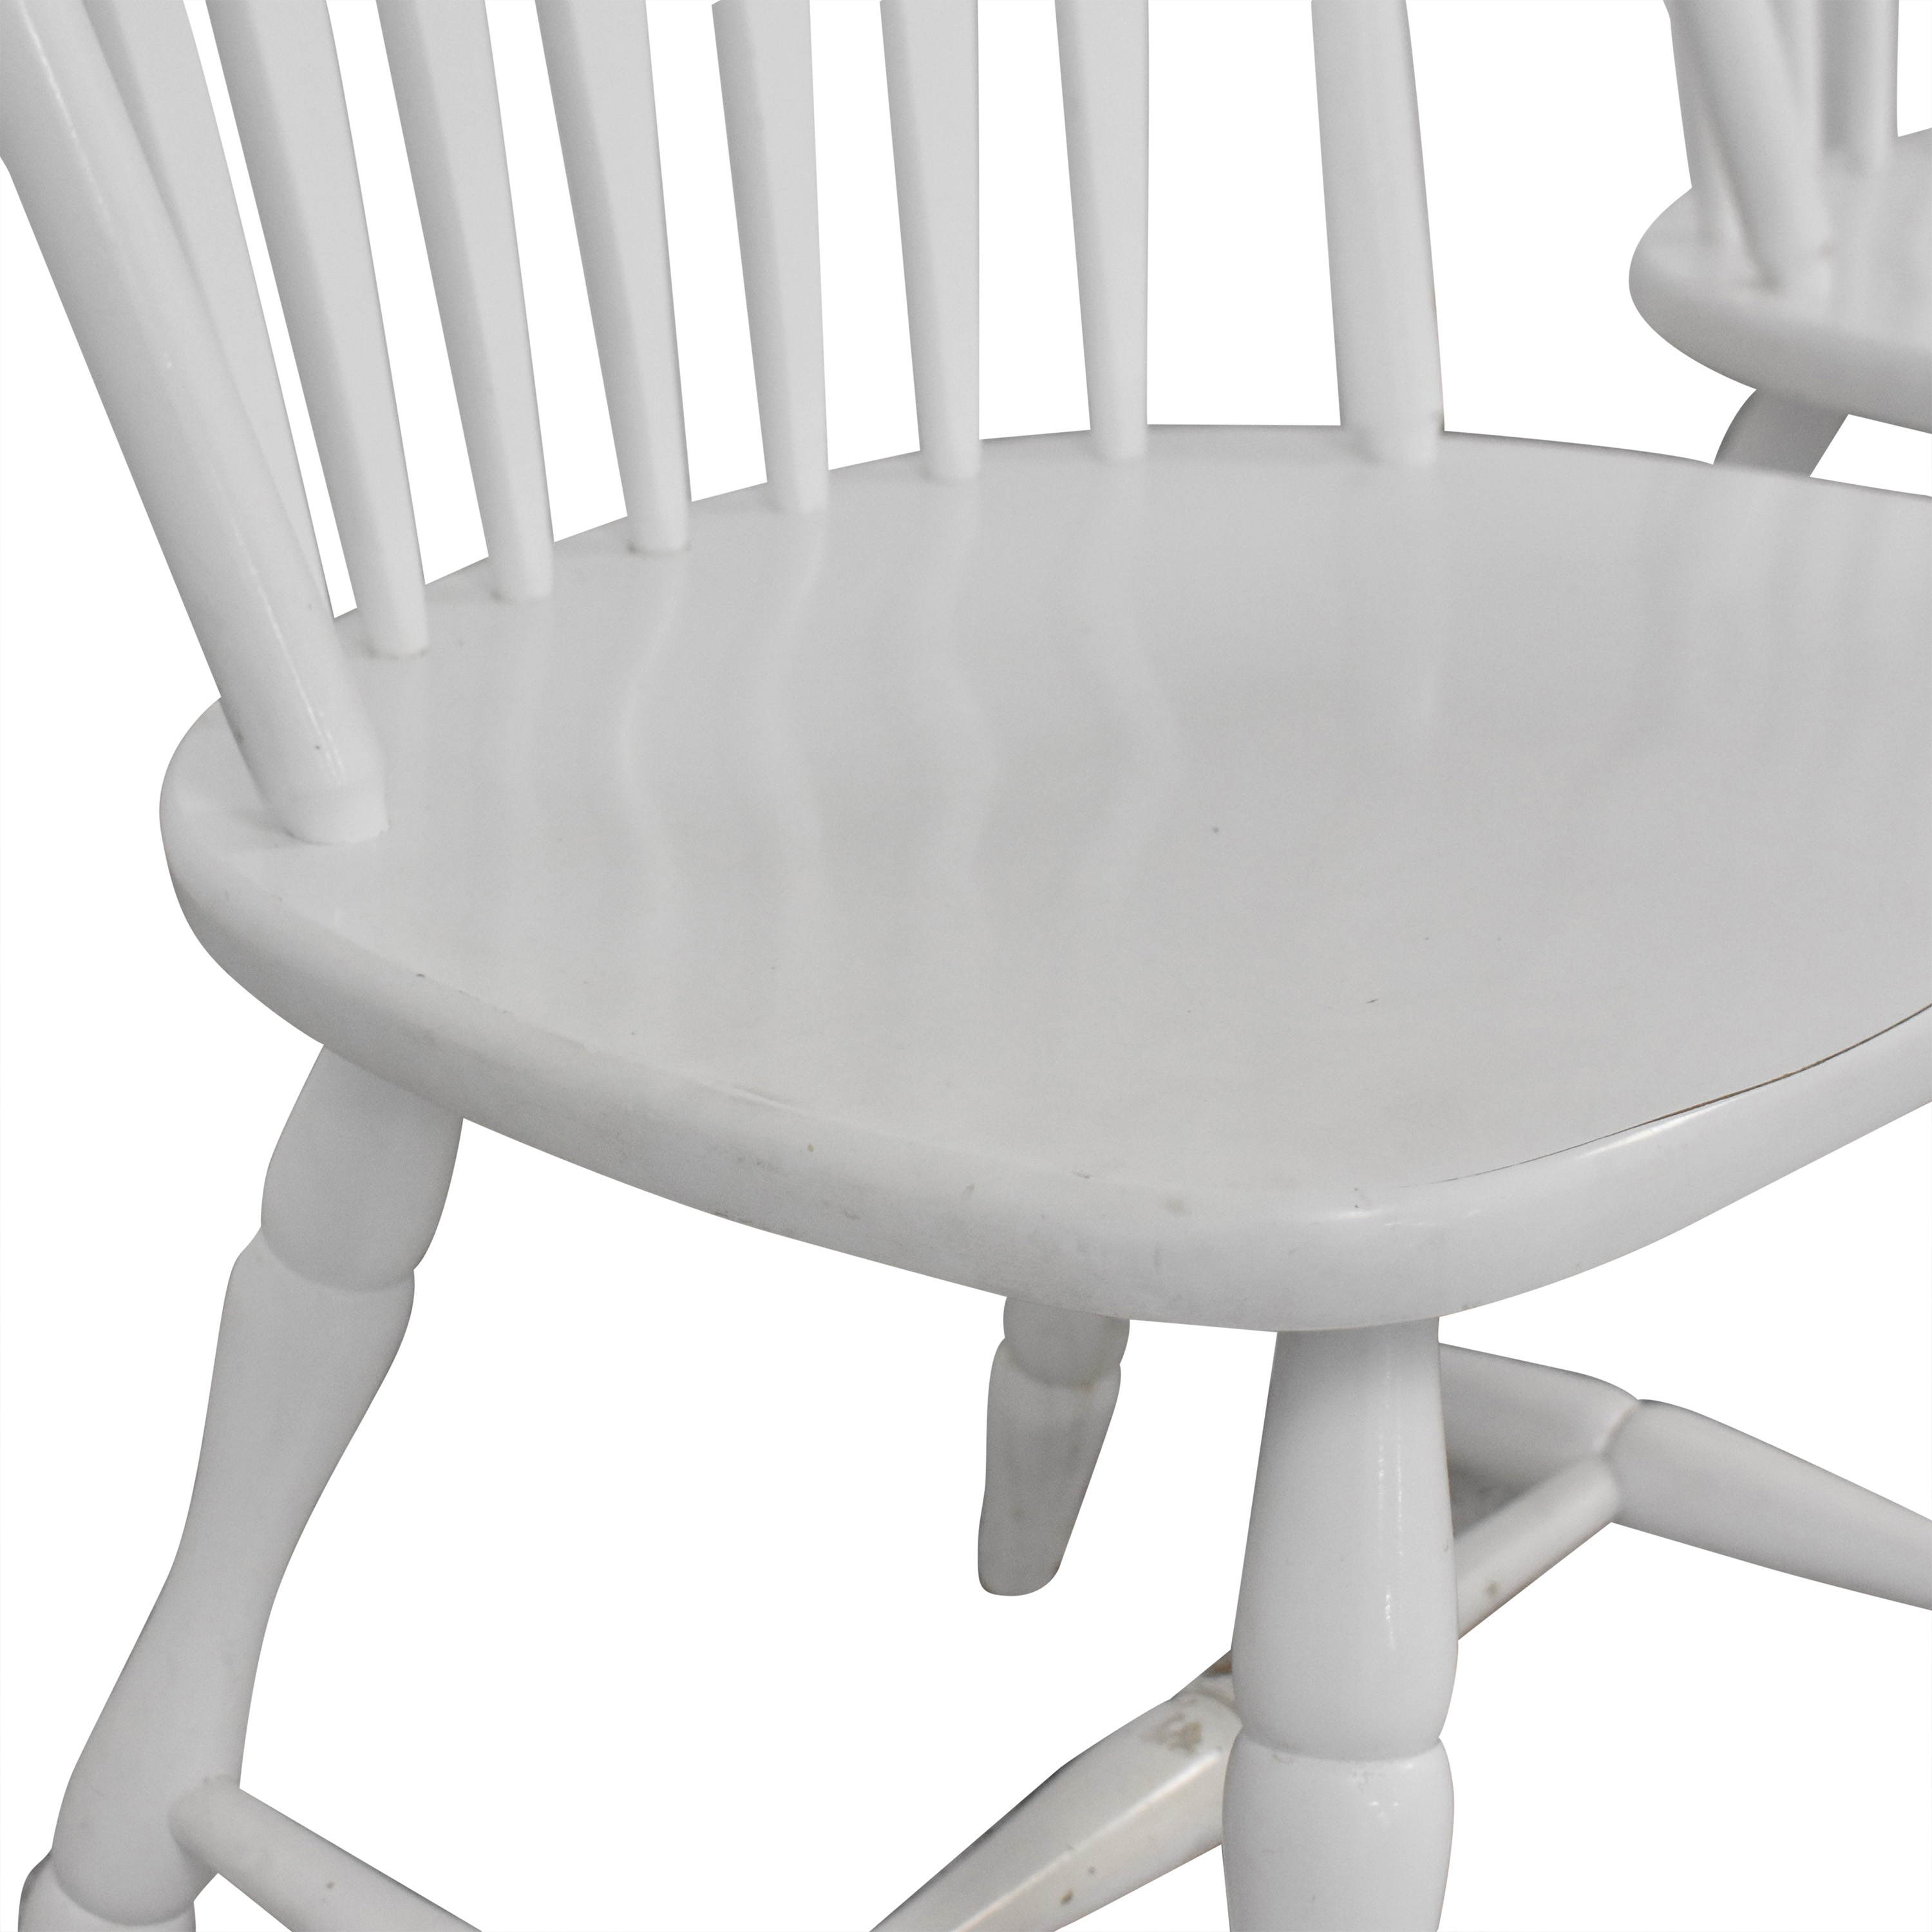 Canadel Canadel Windsor Dining Chairs used